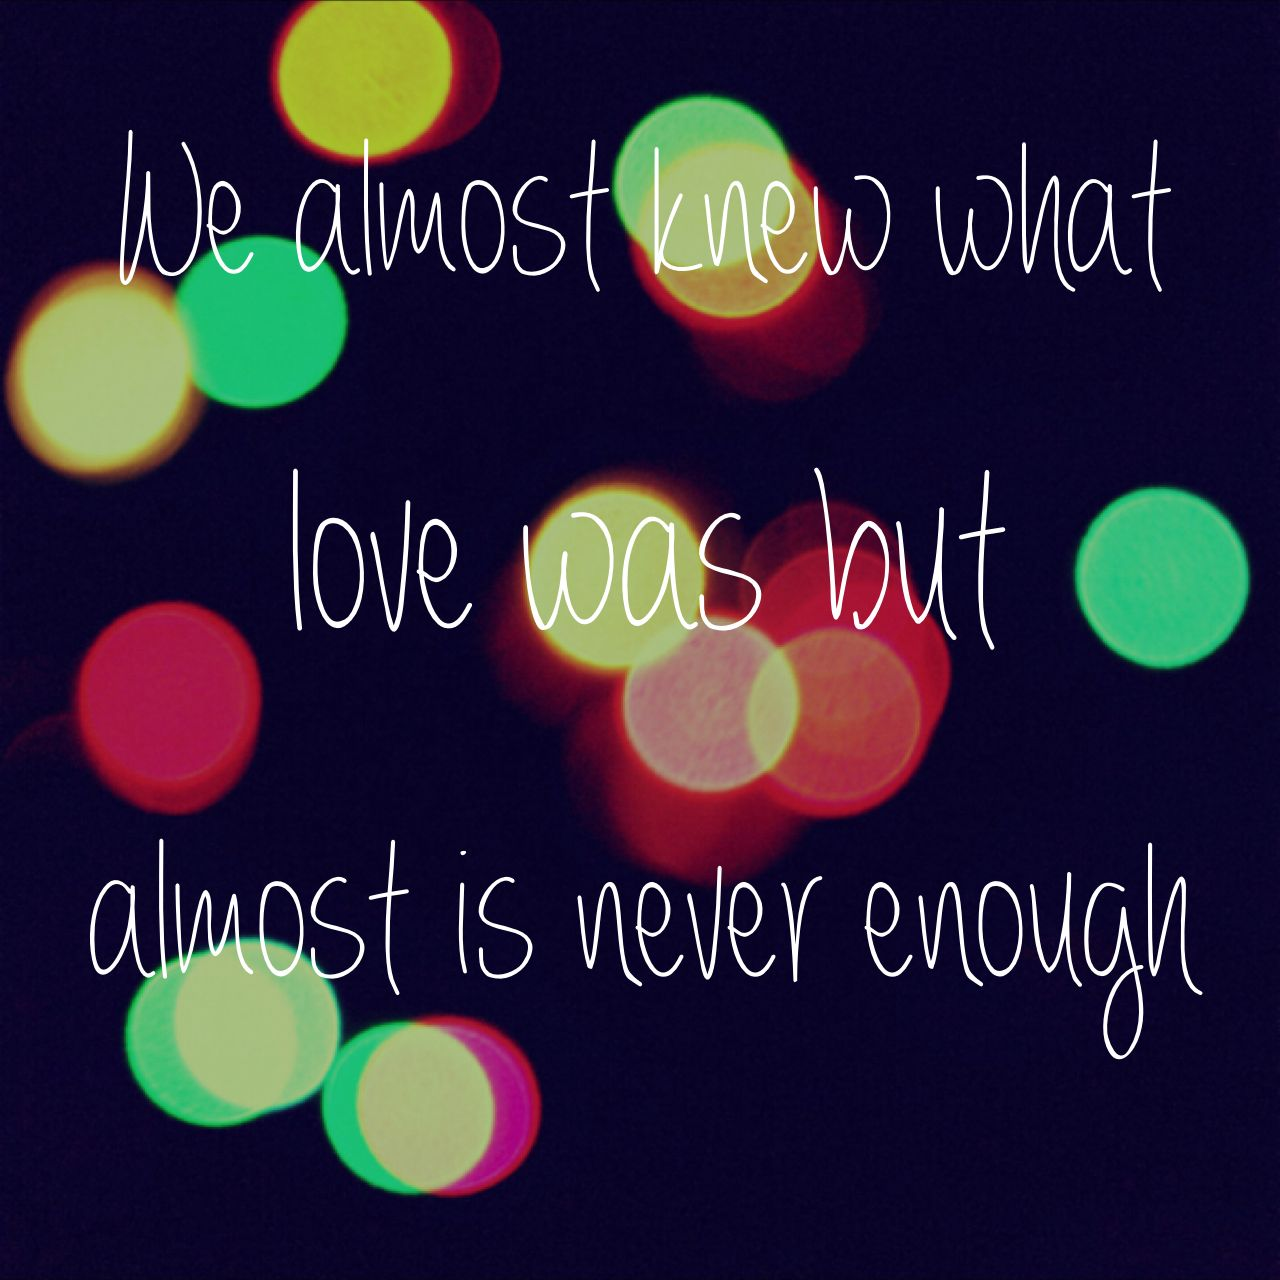 We Almost Knew What Love Was But Almost Is Never Enough